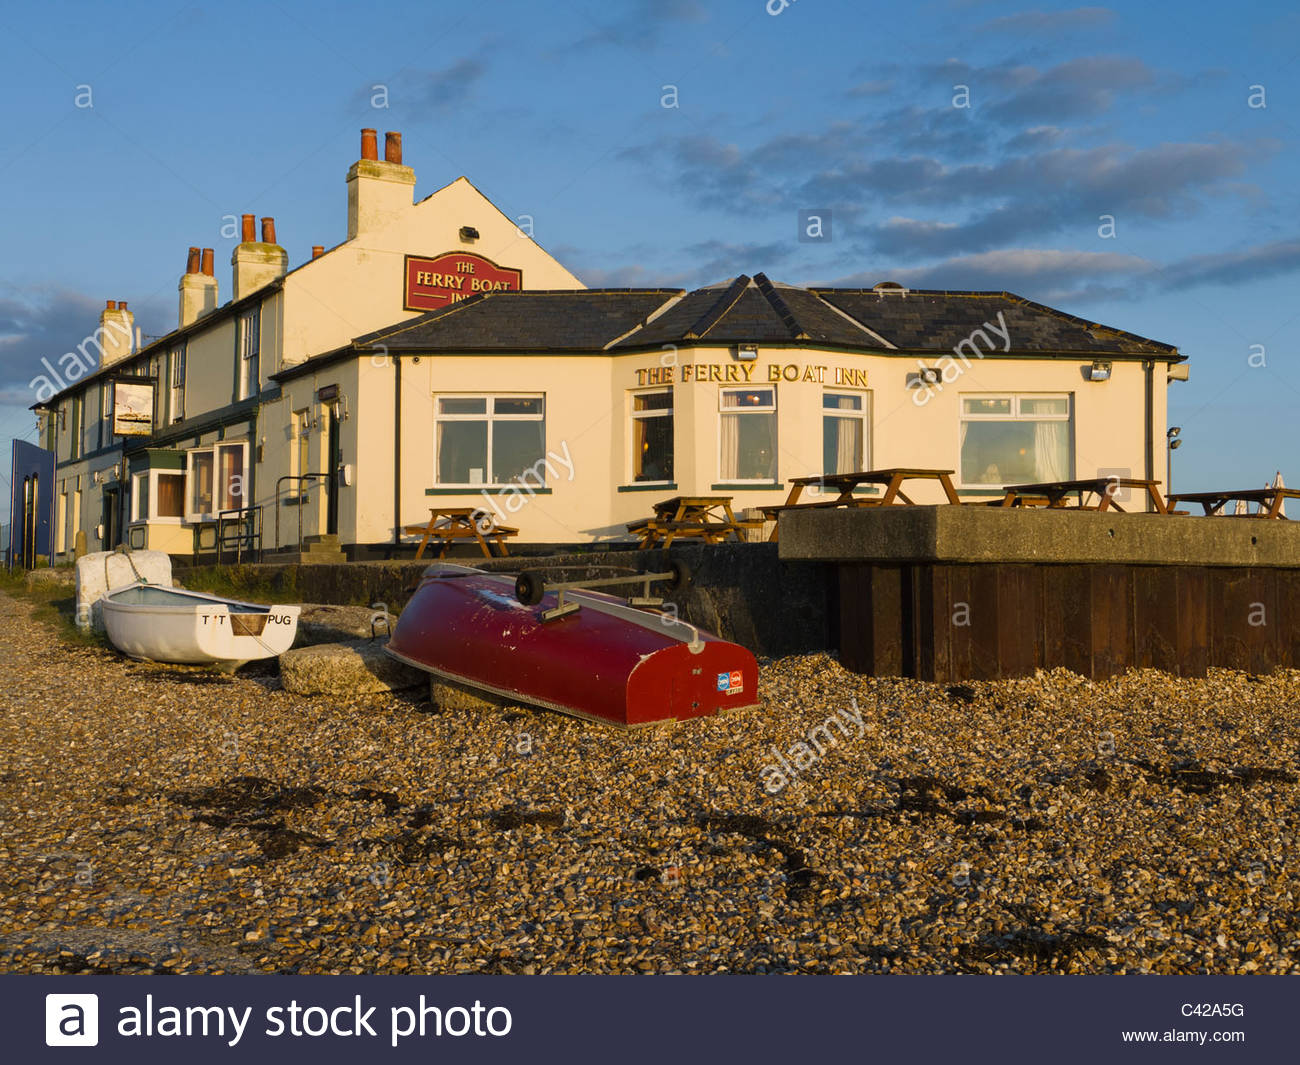 The Ferry Boat Inn Hayling Island Hampshire England UK - Stock Image